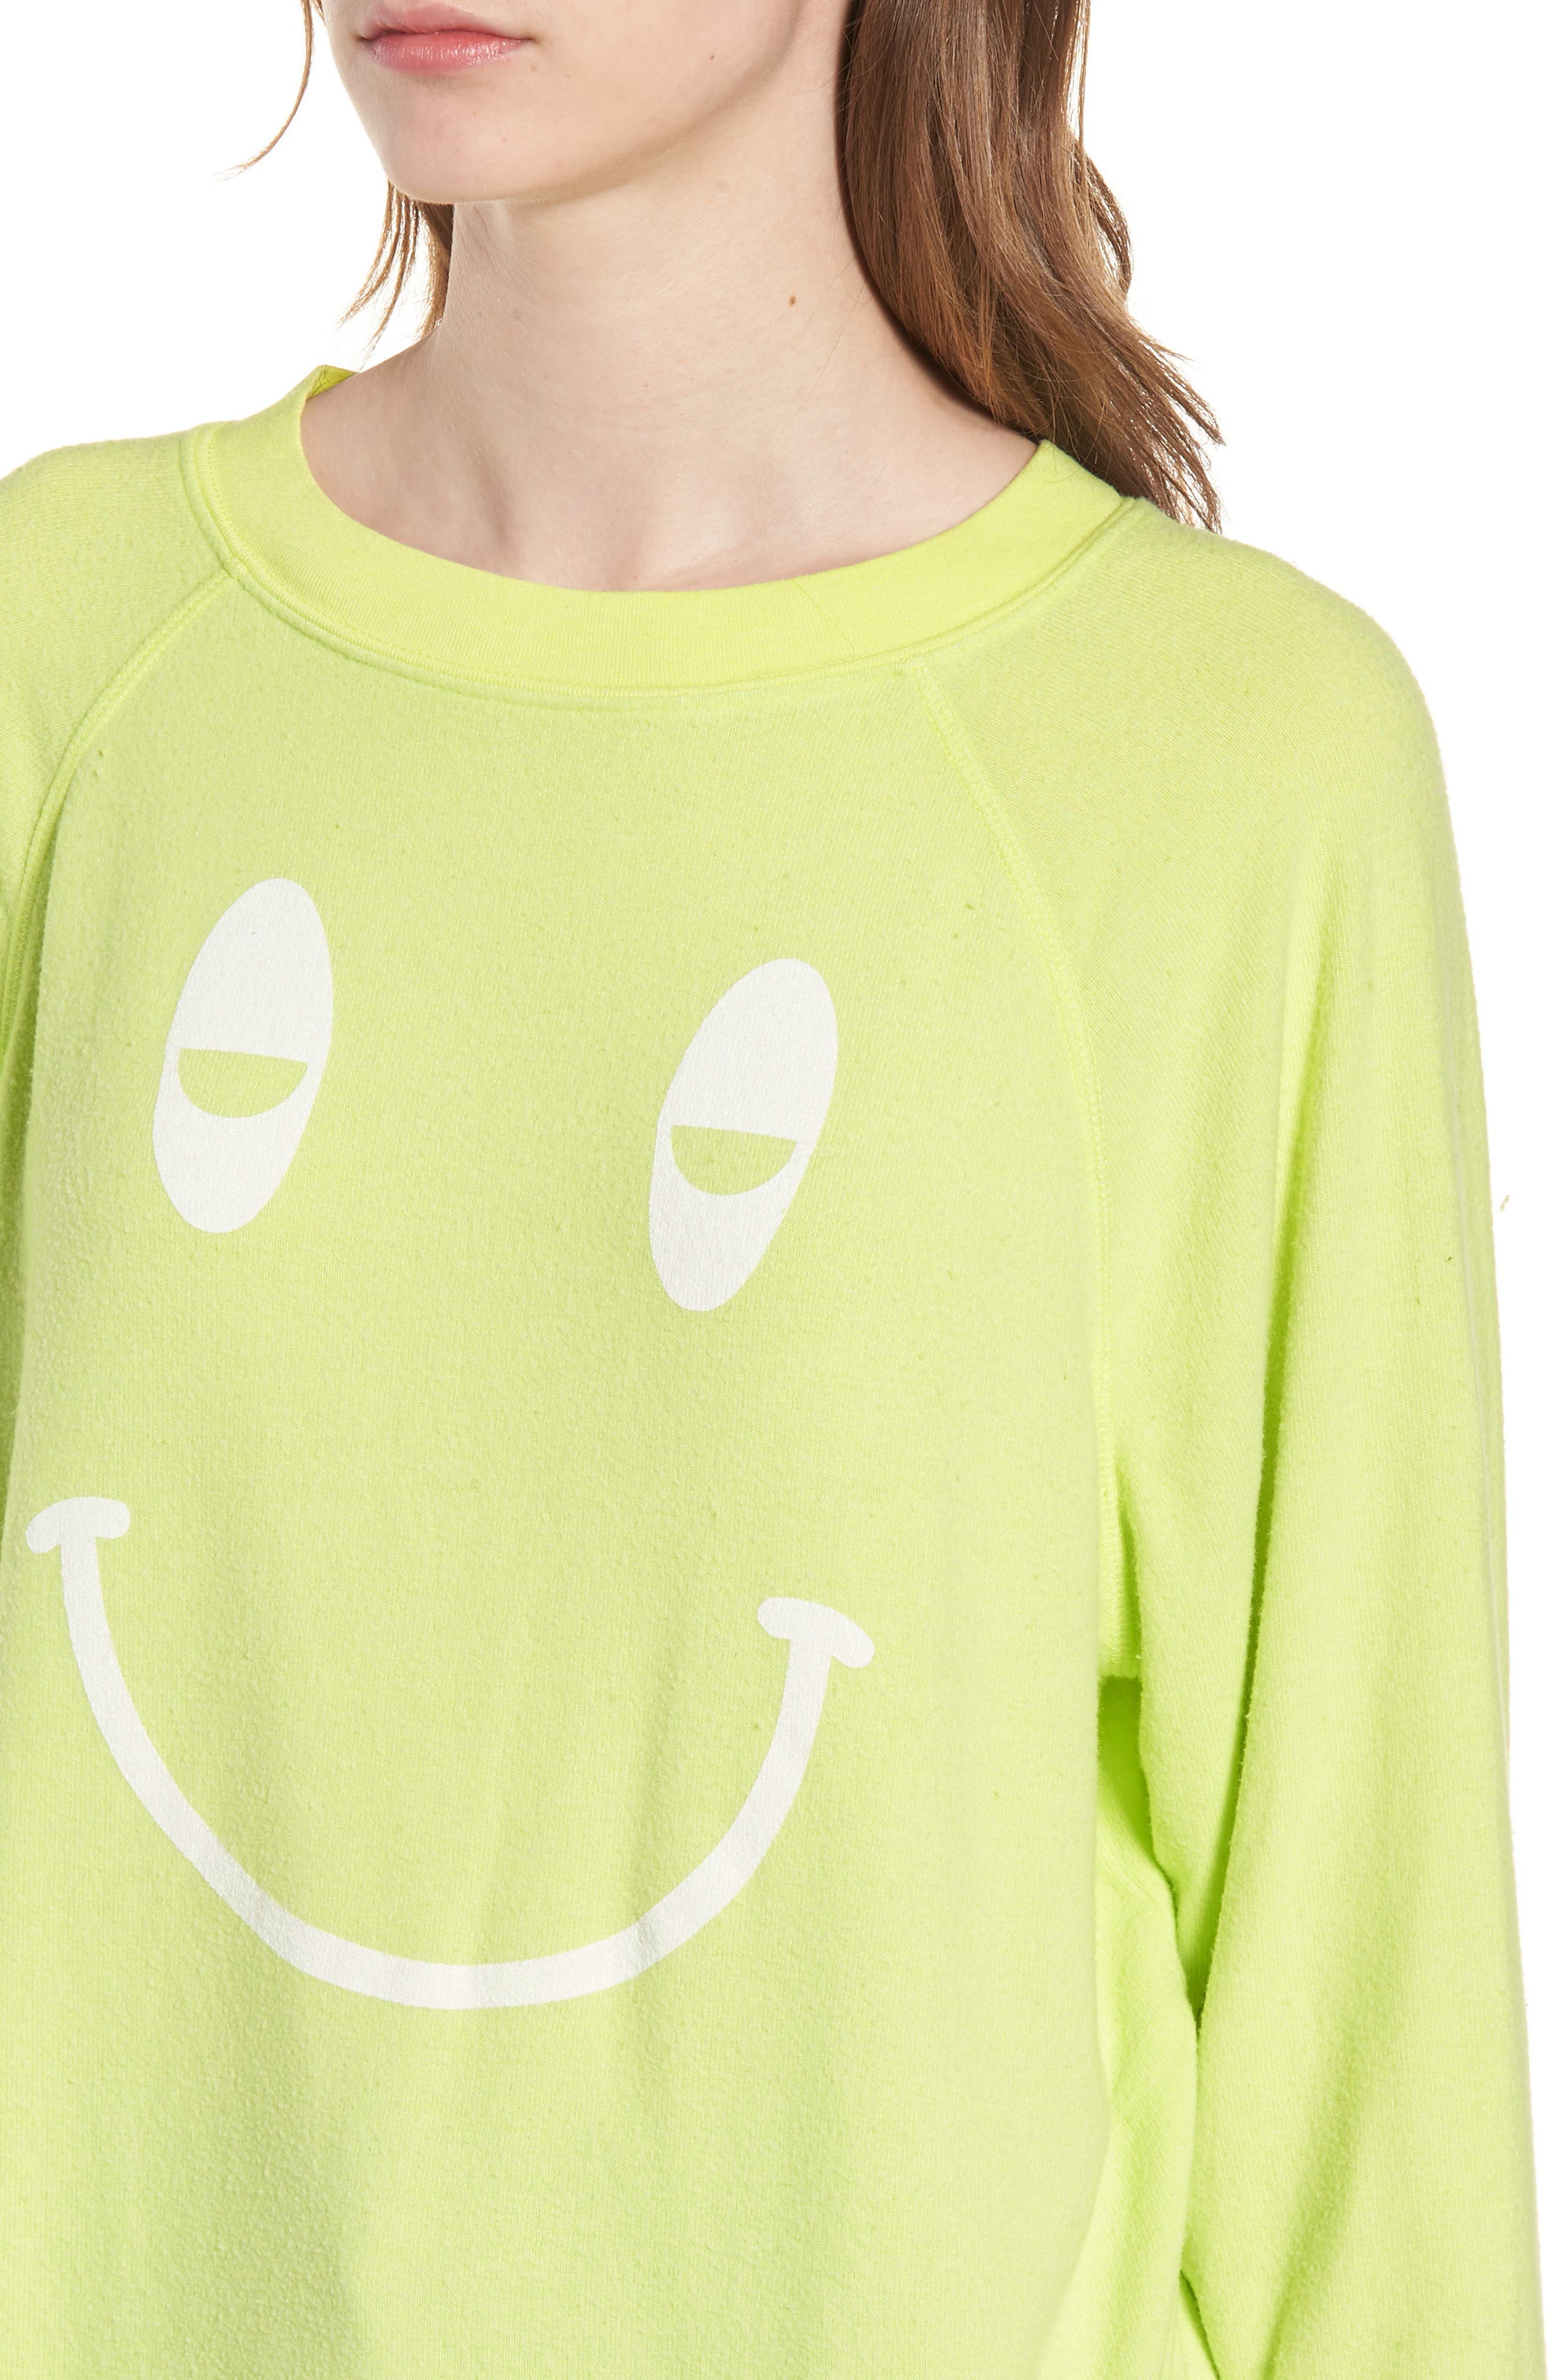 Sleepy Smiley Sommers Sweatshirt,                             Alternate thumbnail 4, color,